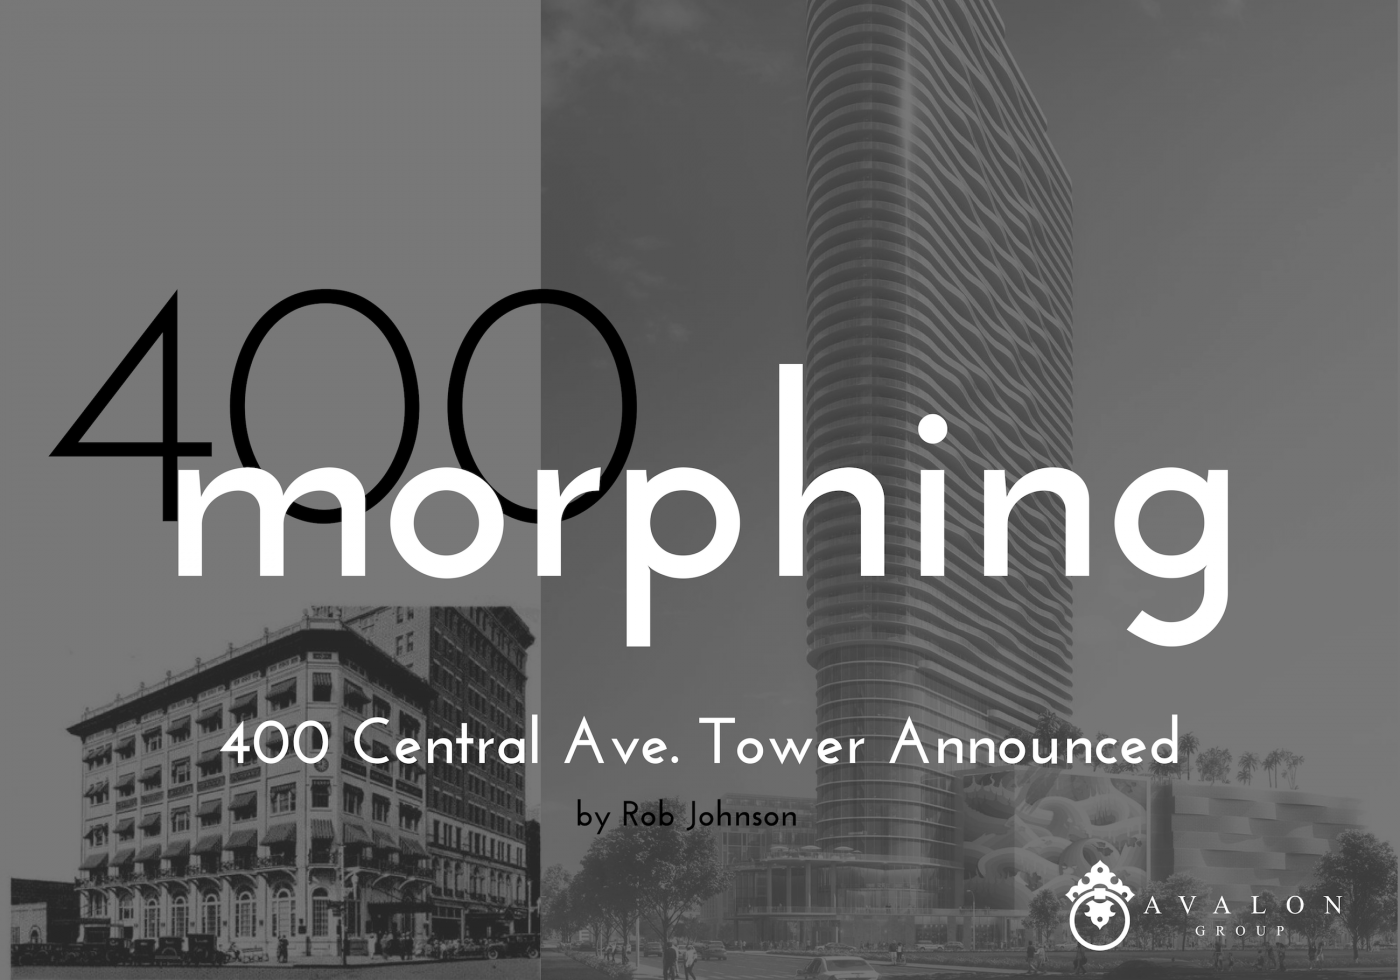 400 Central Ave. St Petersburg Tower